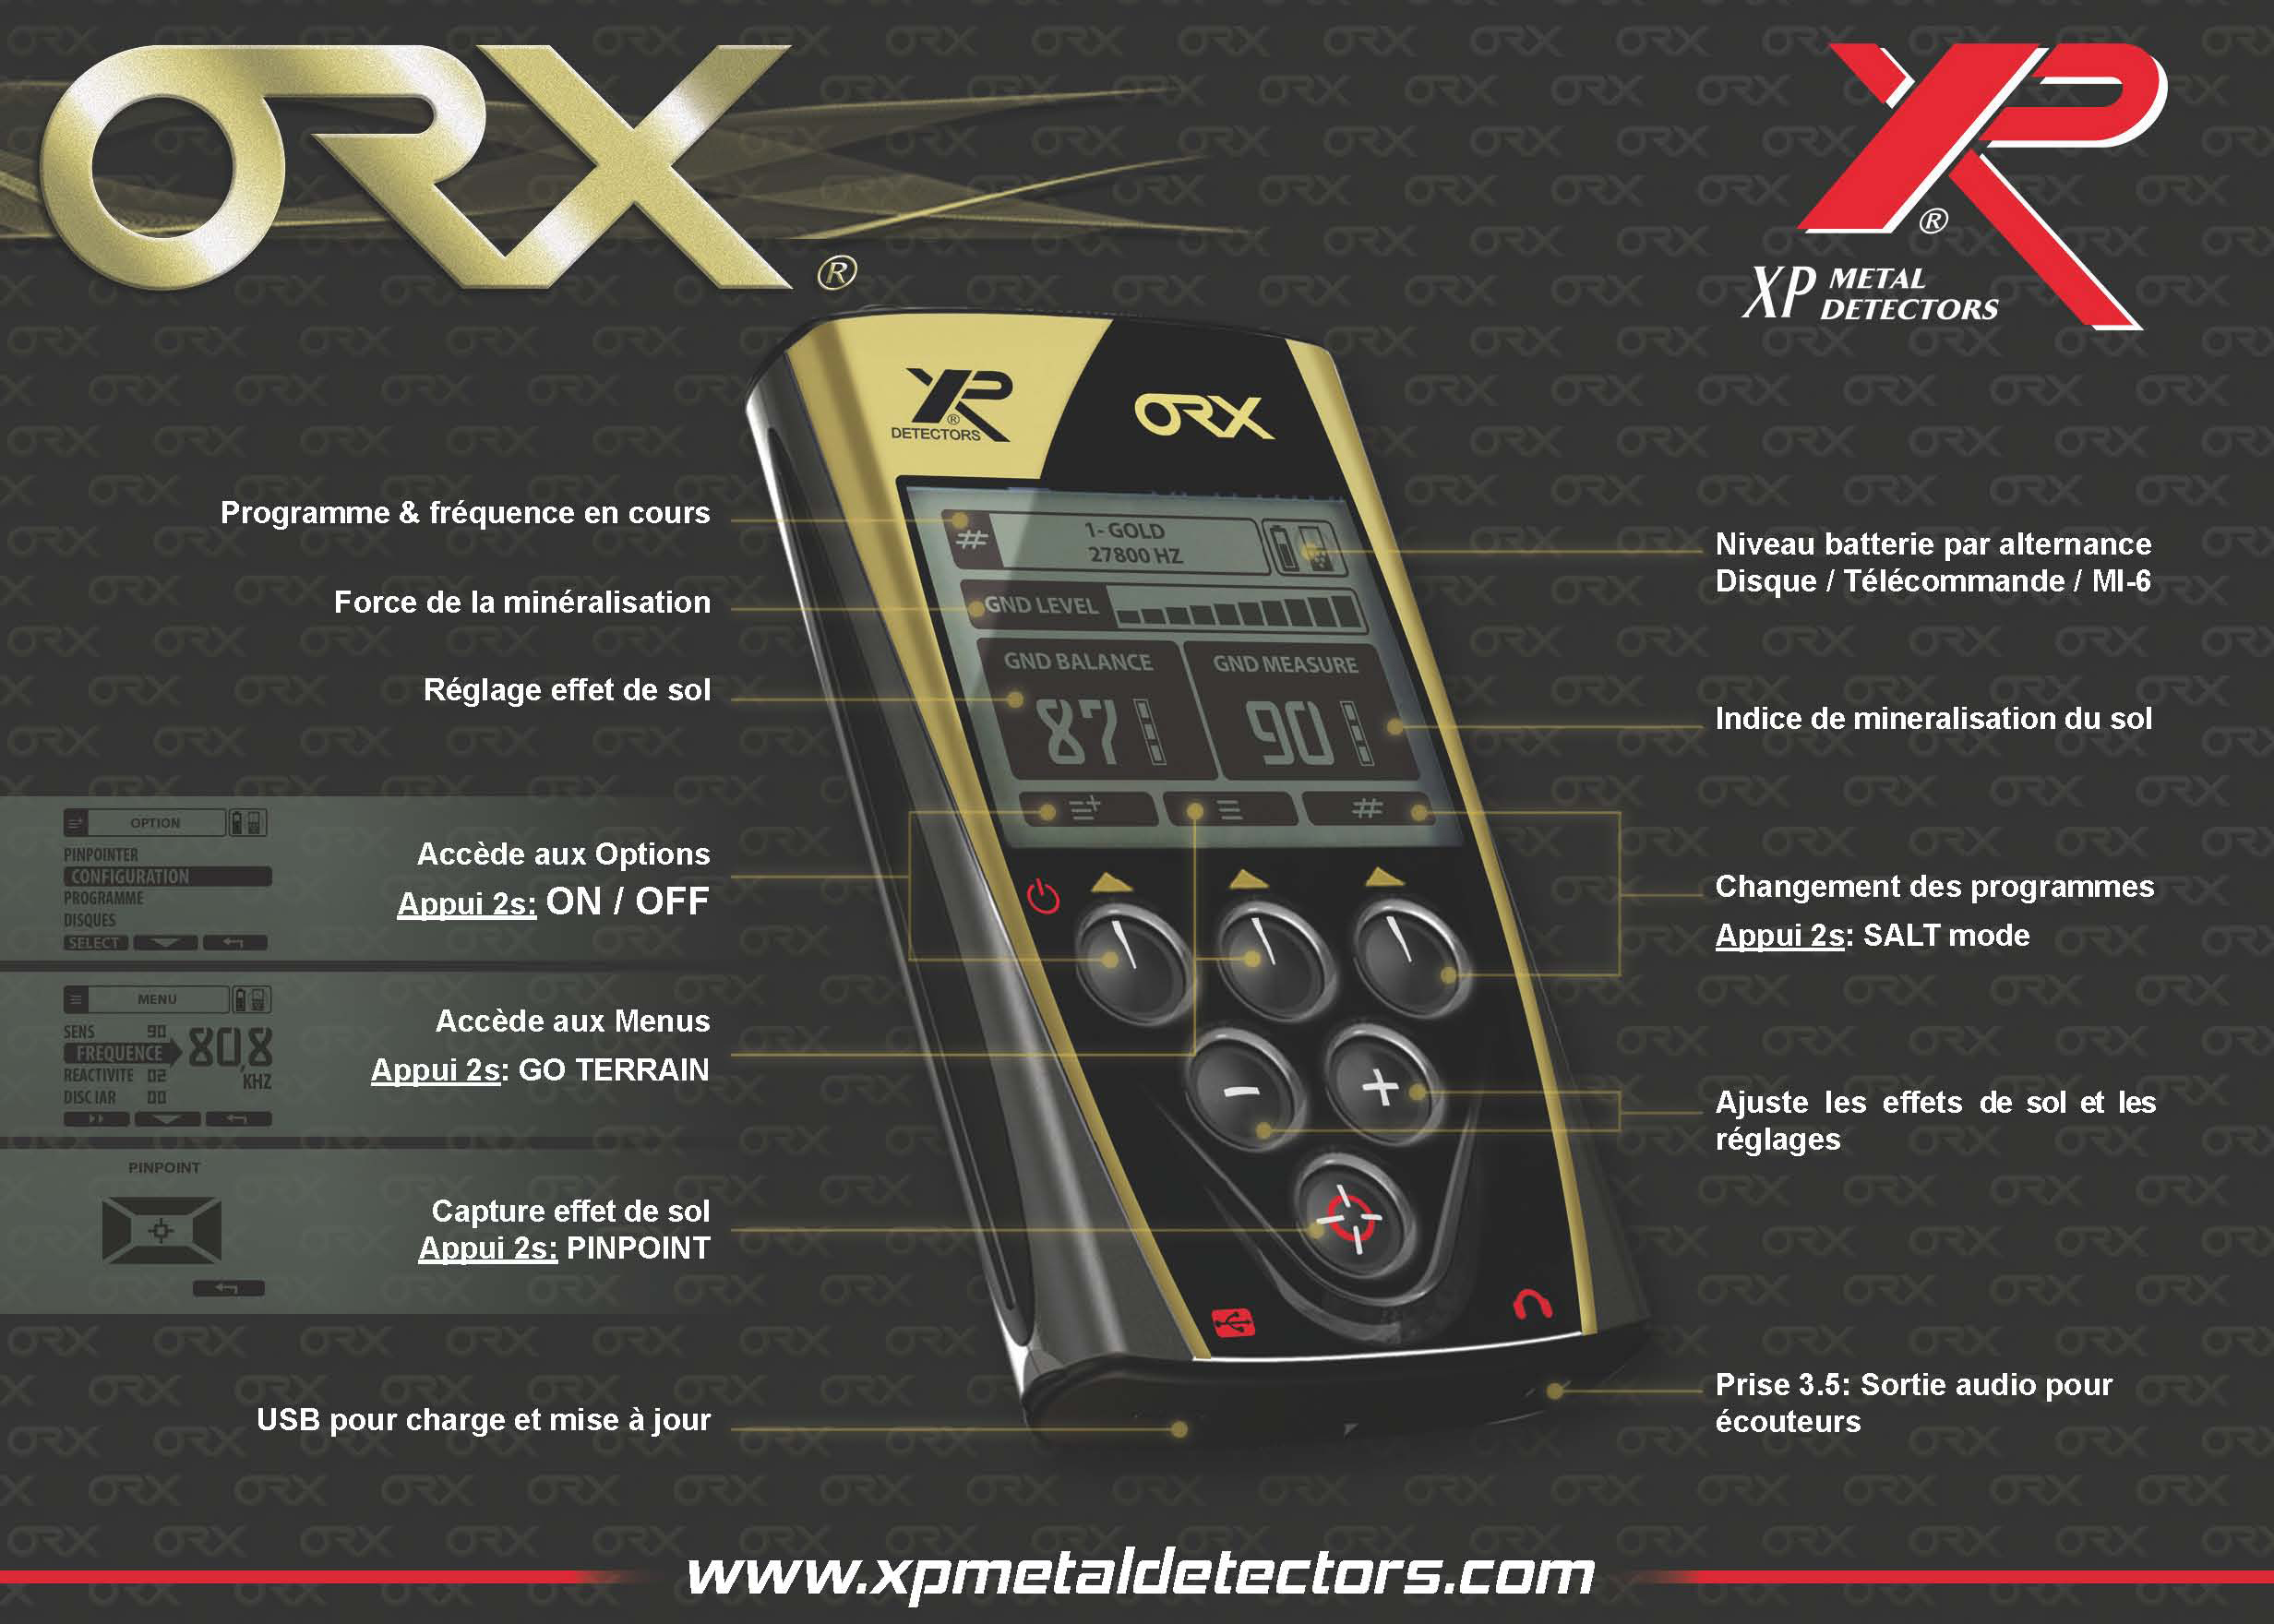 ORX FONCTIONS